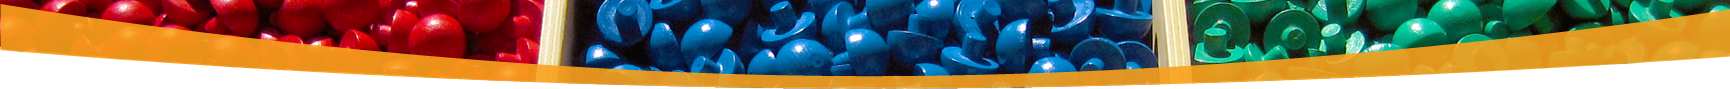 NAMC Montessori Upper Elementary Diploma Program Curriculum Samples